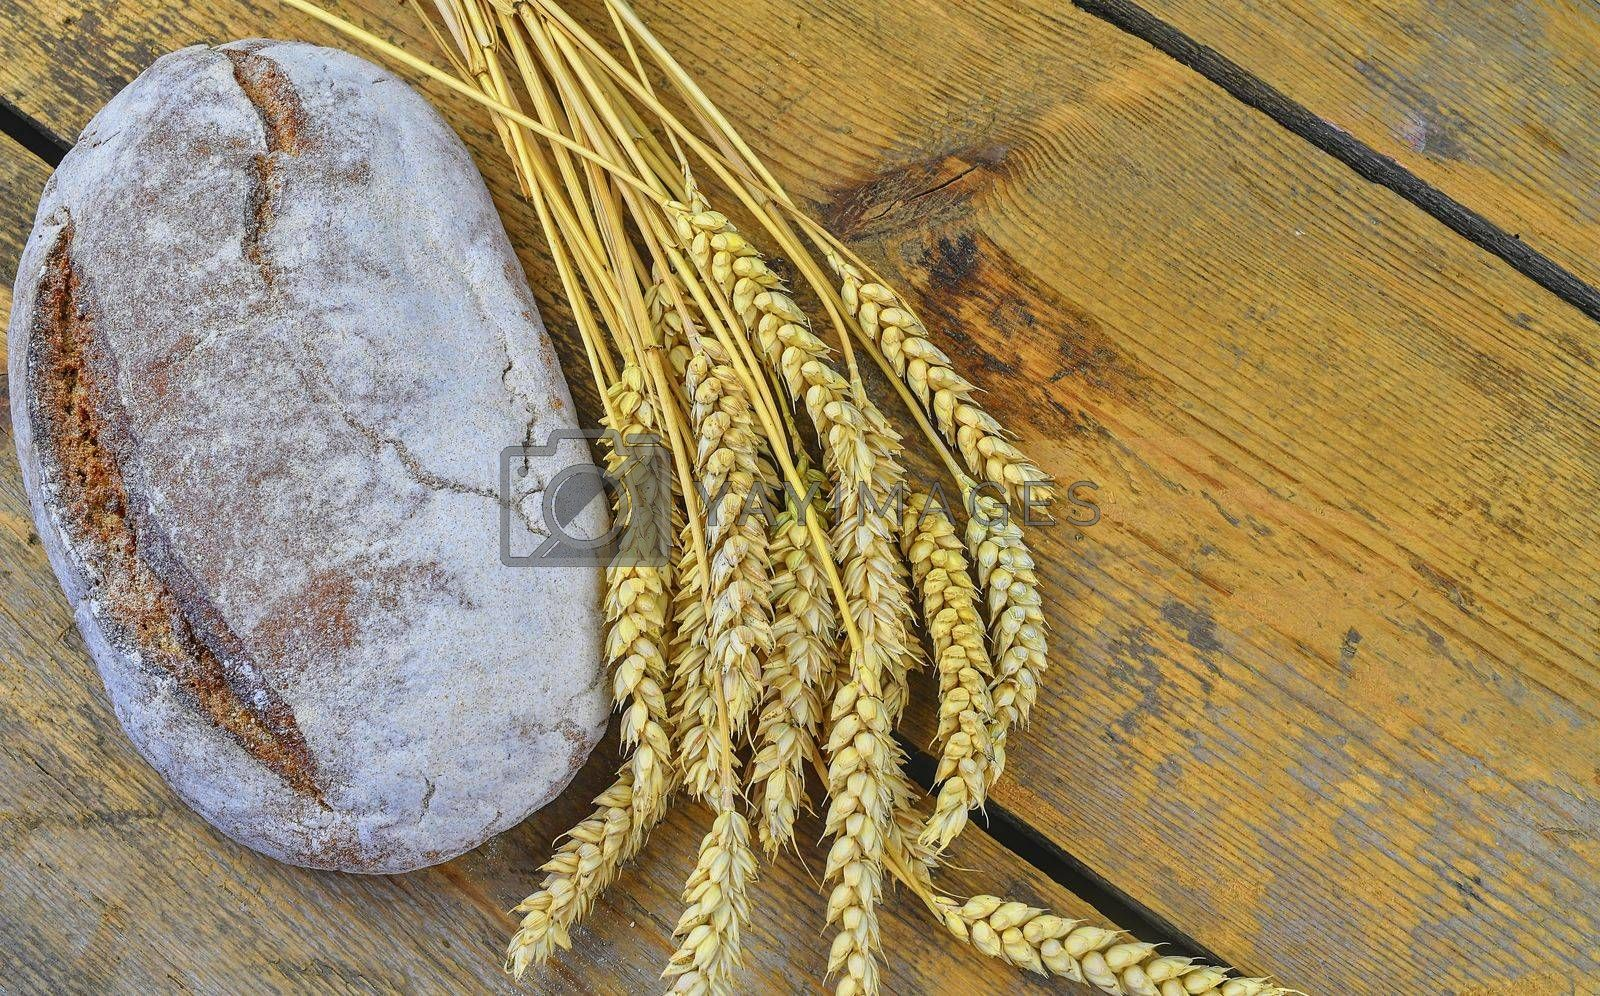 Loaf of bread and ears of grain on wood background. Rustic and rural concept. Copy space.